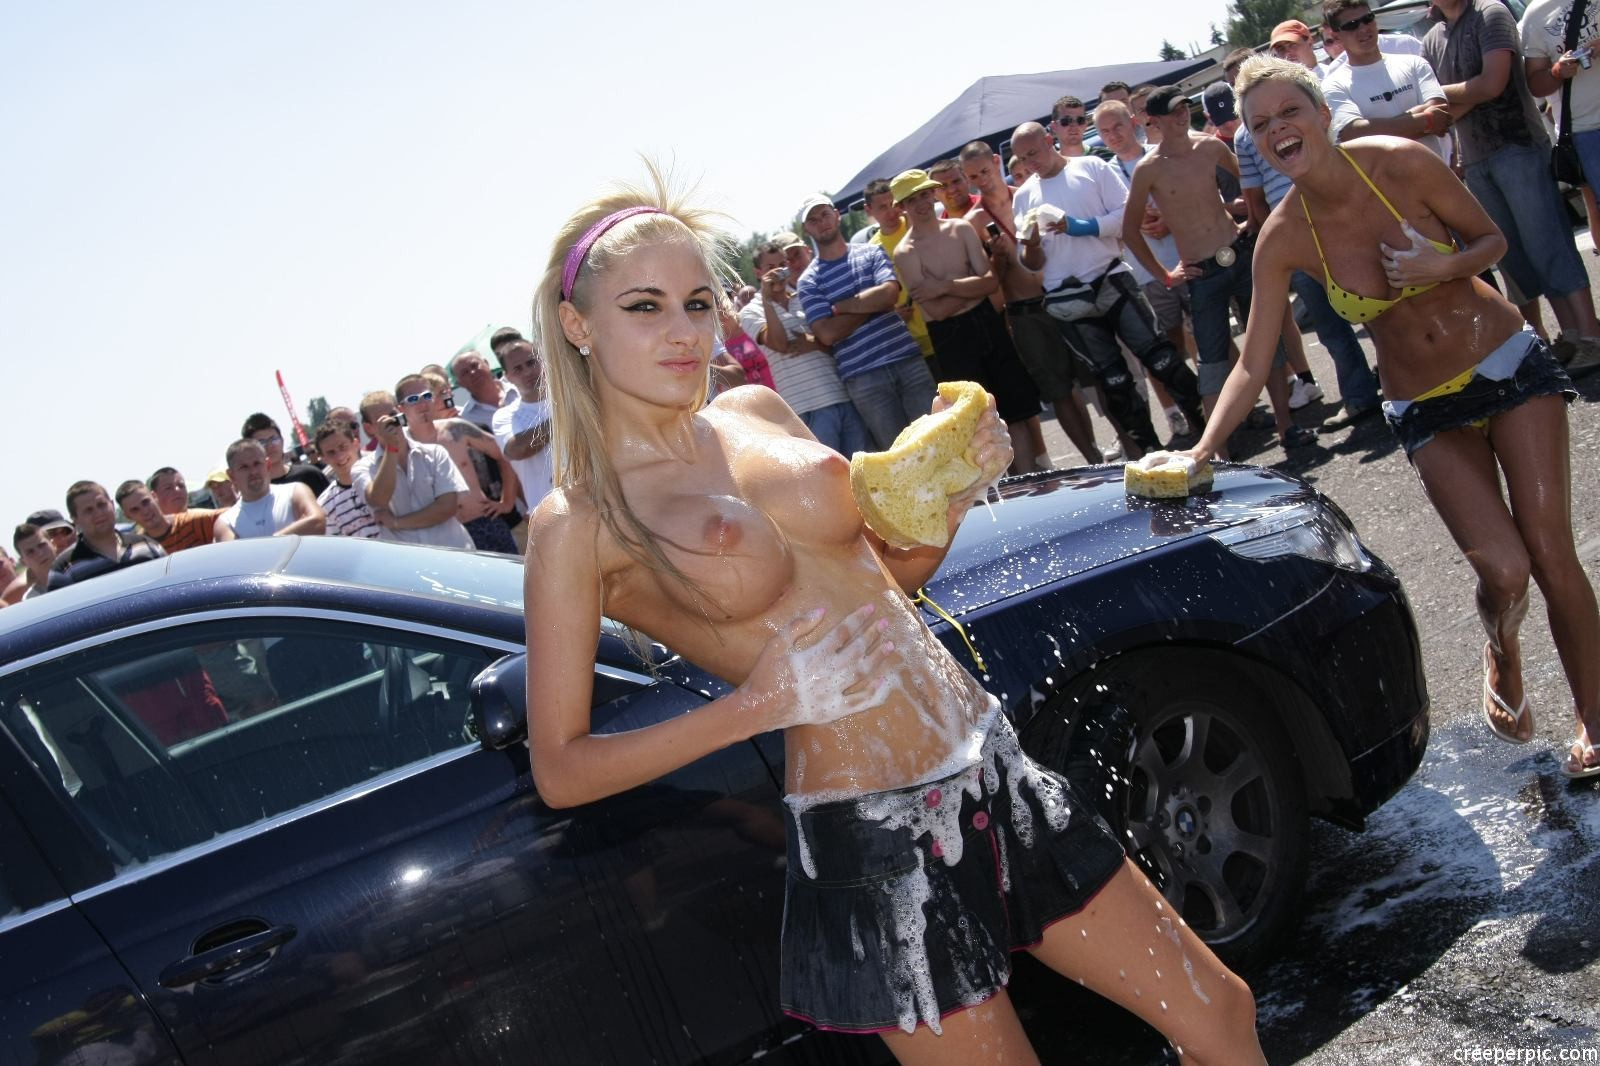 Kittens car wash pays women to clean cars wearing only bikinis and